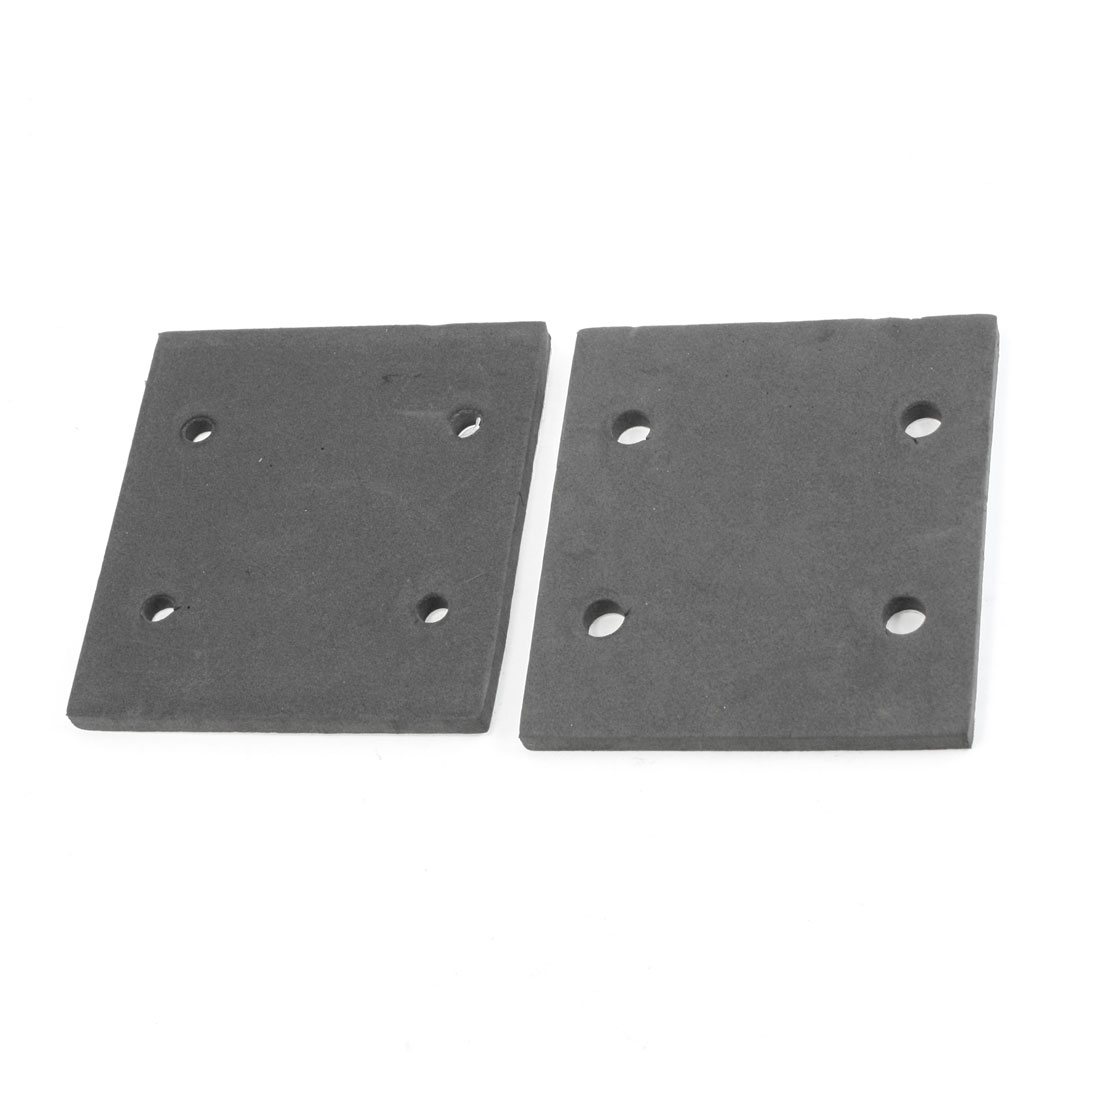 2 Pcs Rectangle Foam Replacement Back Pad for Makita 4510 Sander Machine